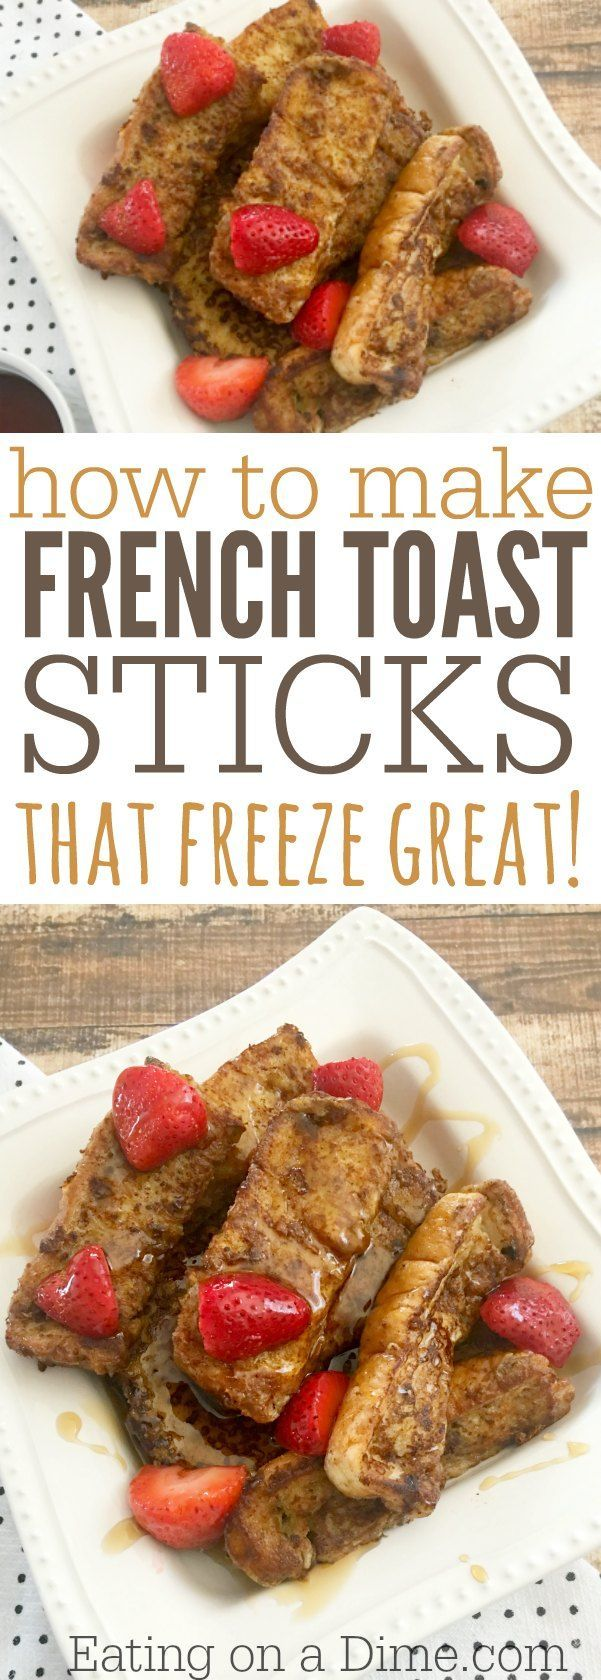 French Toast Sticks recipe is easy to make and the entire family loves it. I know you are going to love this Simple french toast recipe.